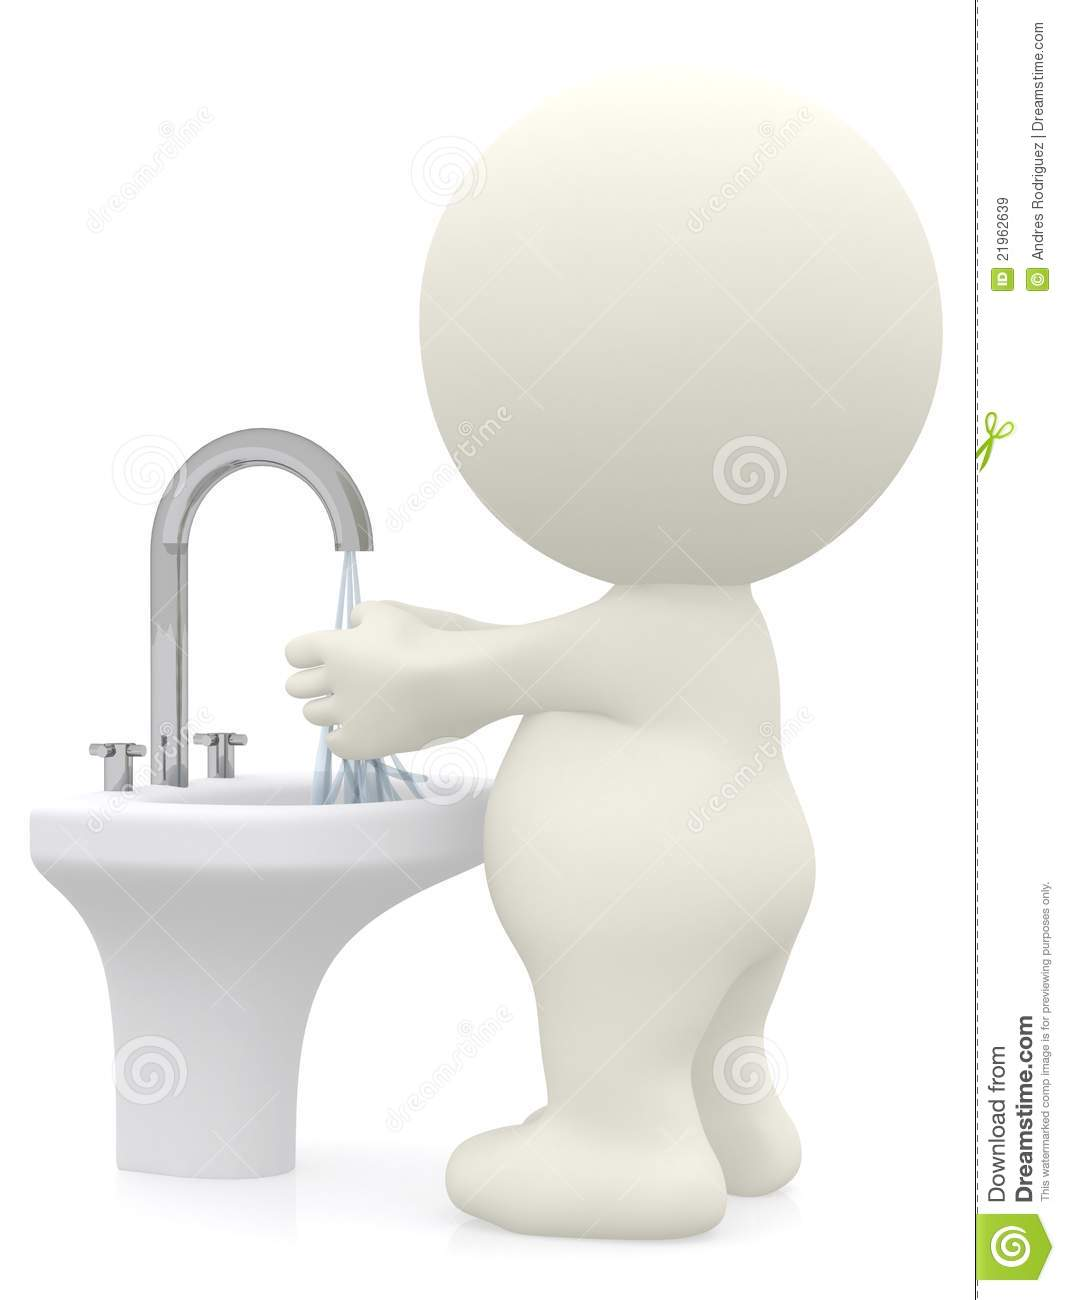 3D Man Washing His Hands Royalty Free Stock Images - Image: 21962639